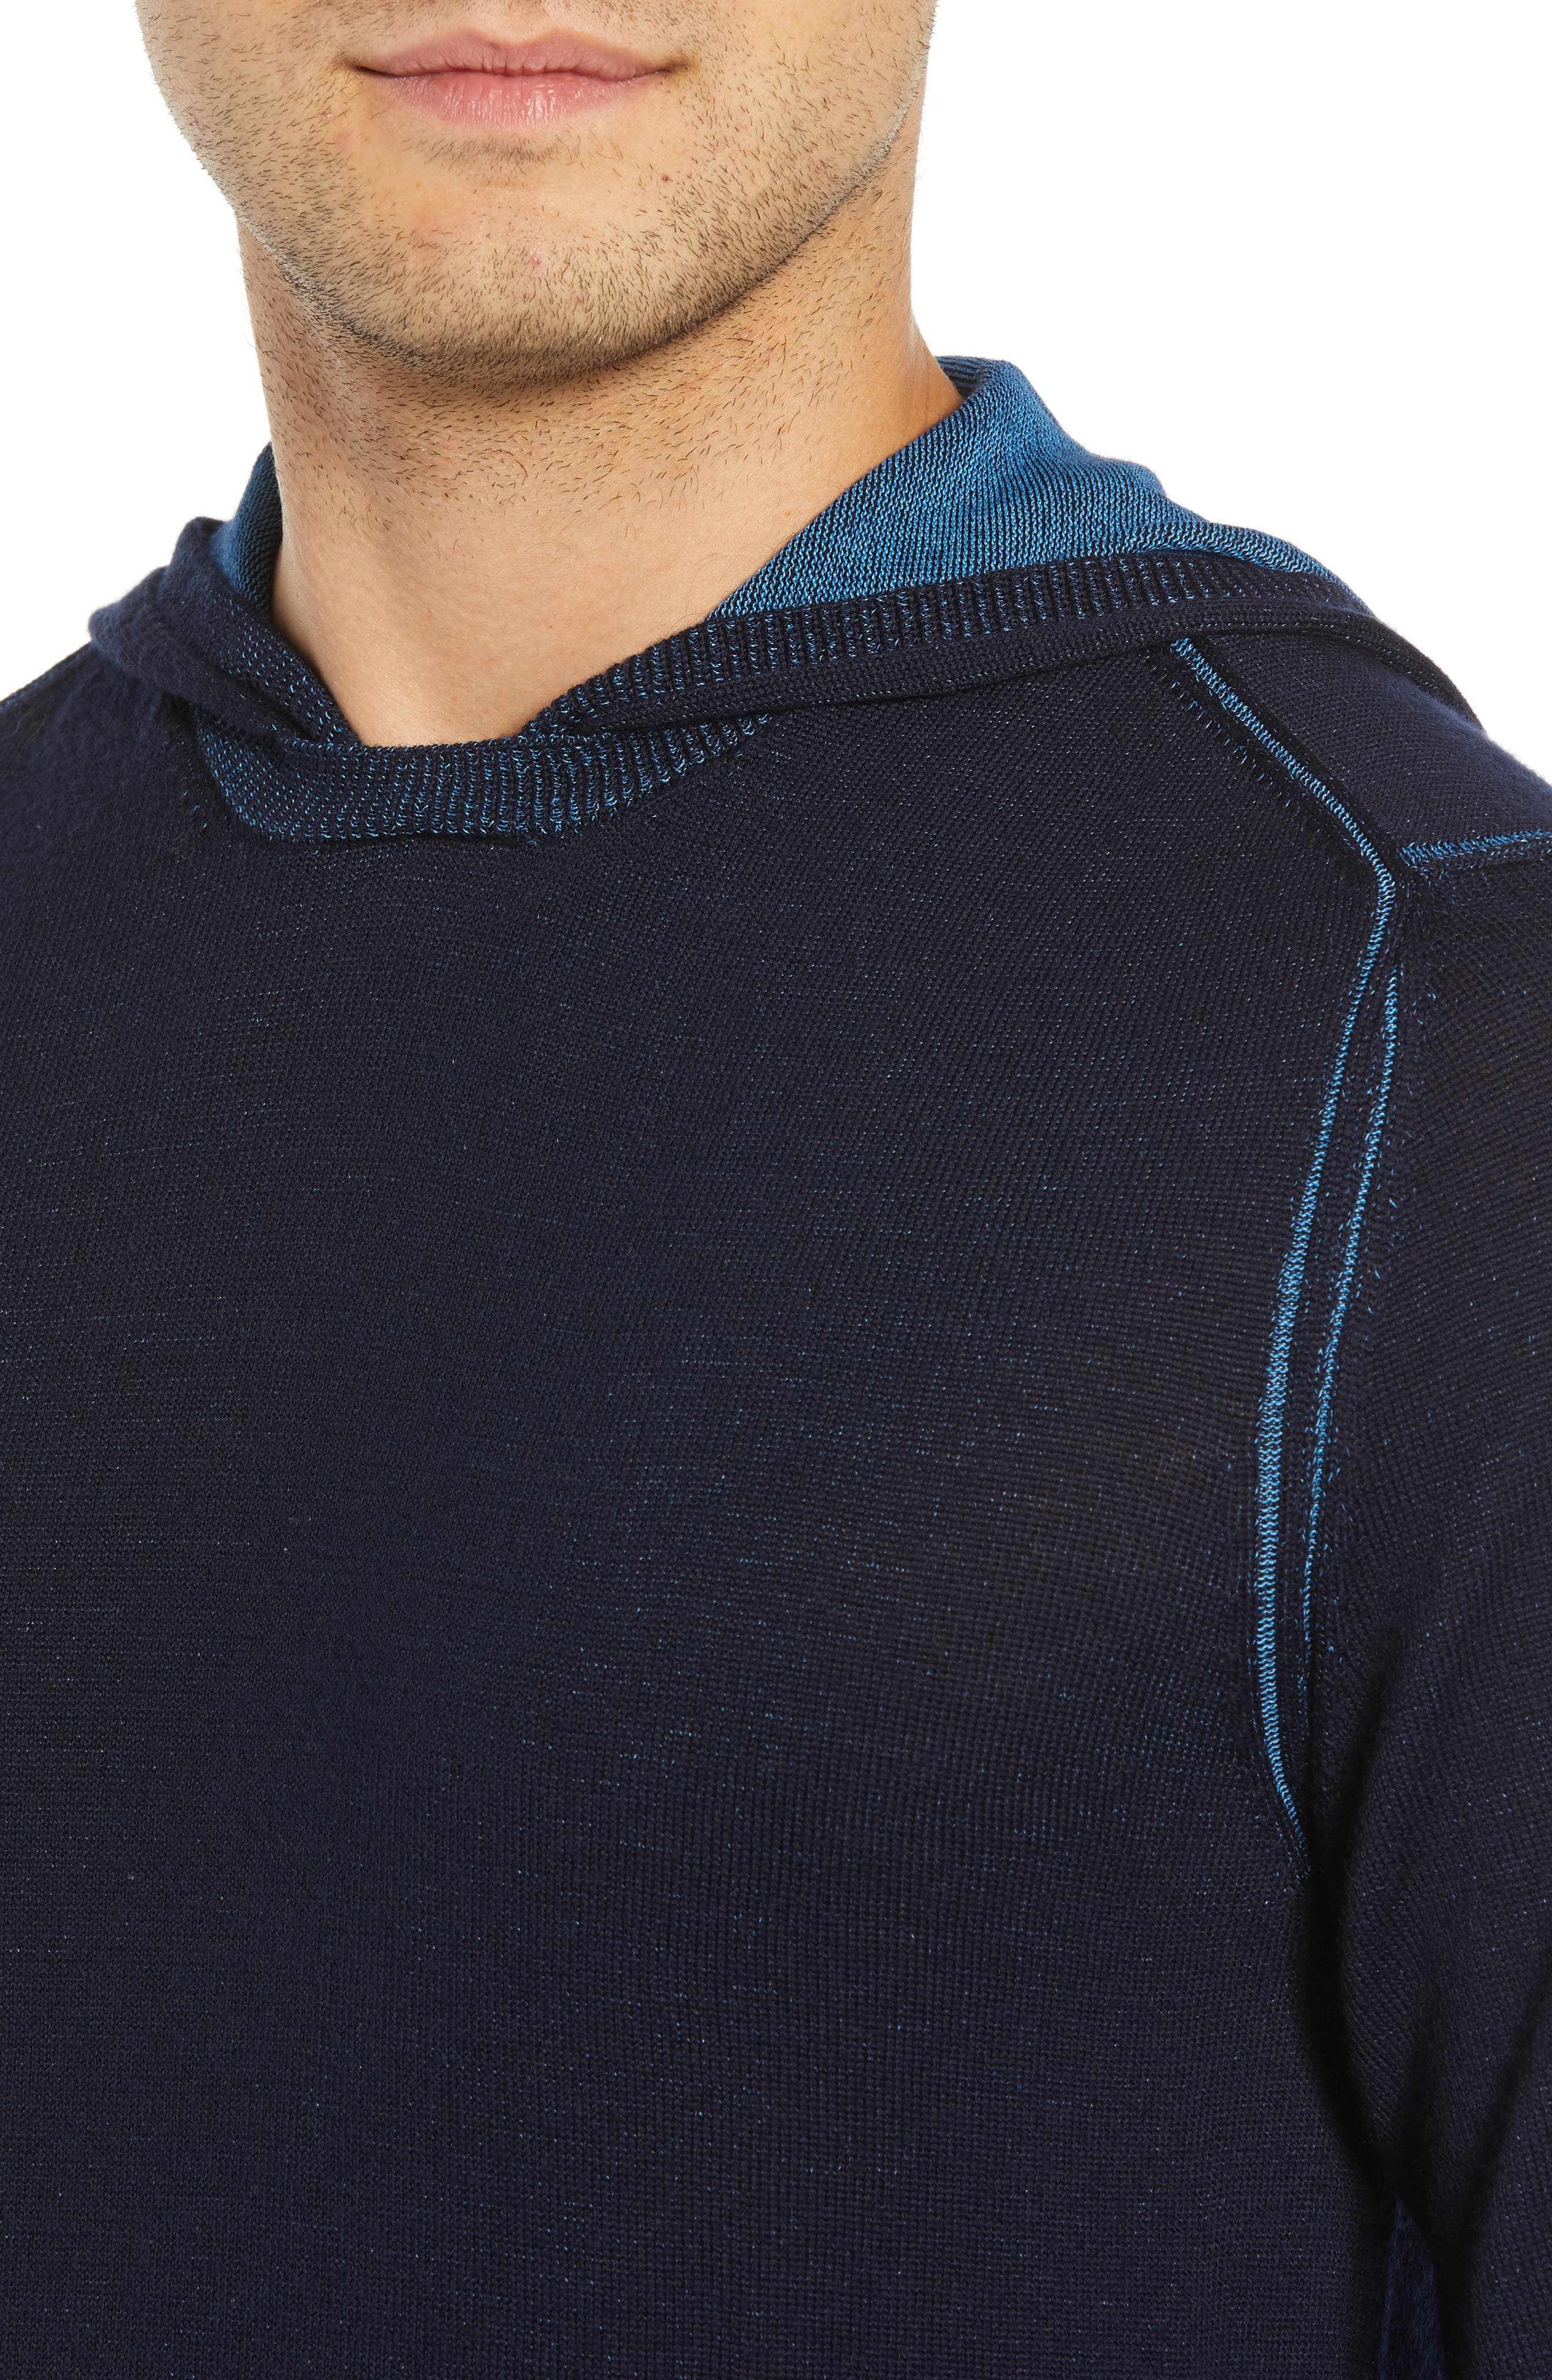 Hooded Pullover Sweater,                             Alternate thumbnail 4, color,                             NIGHT BLUE